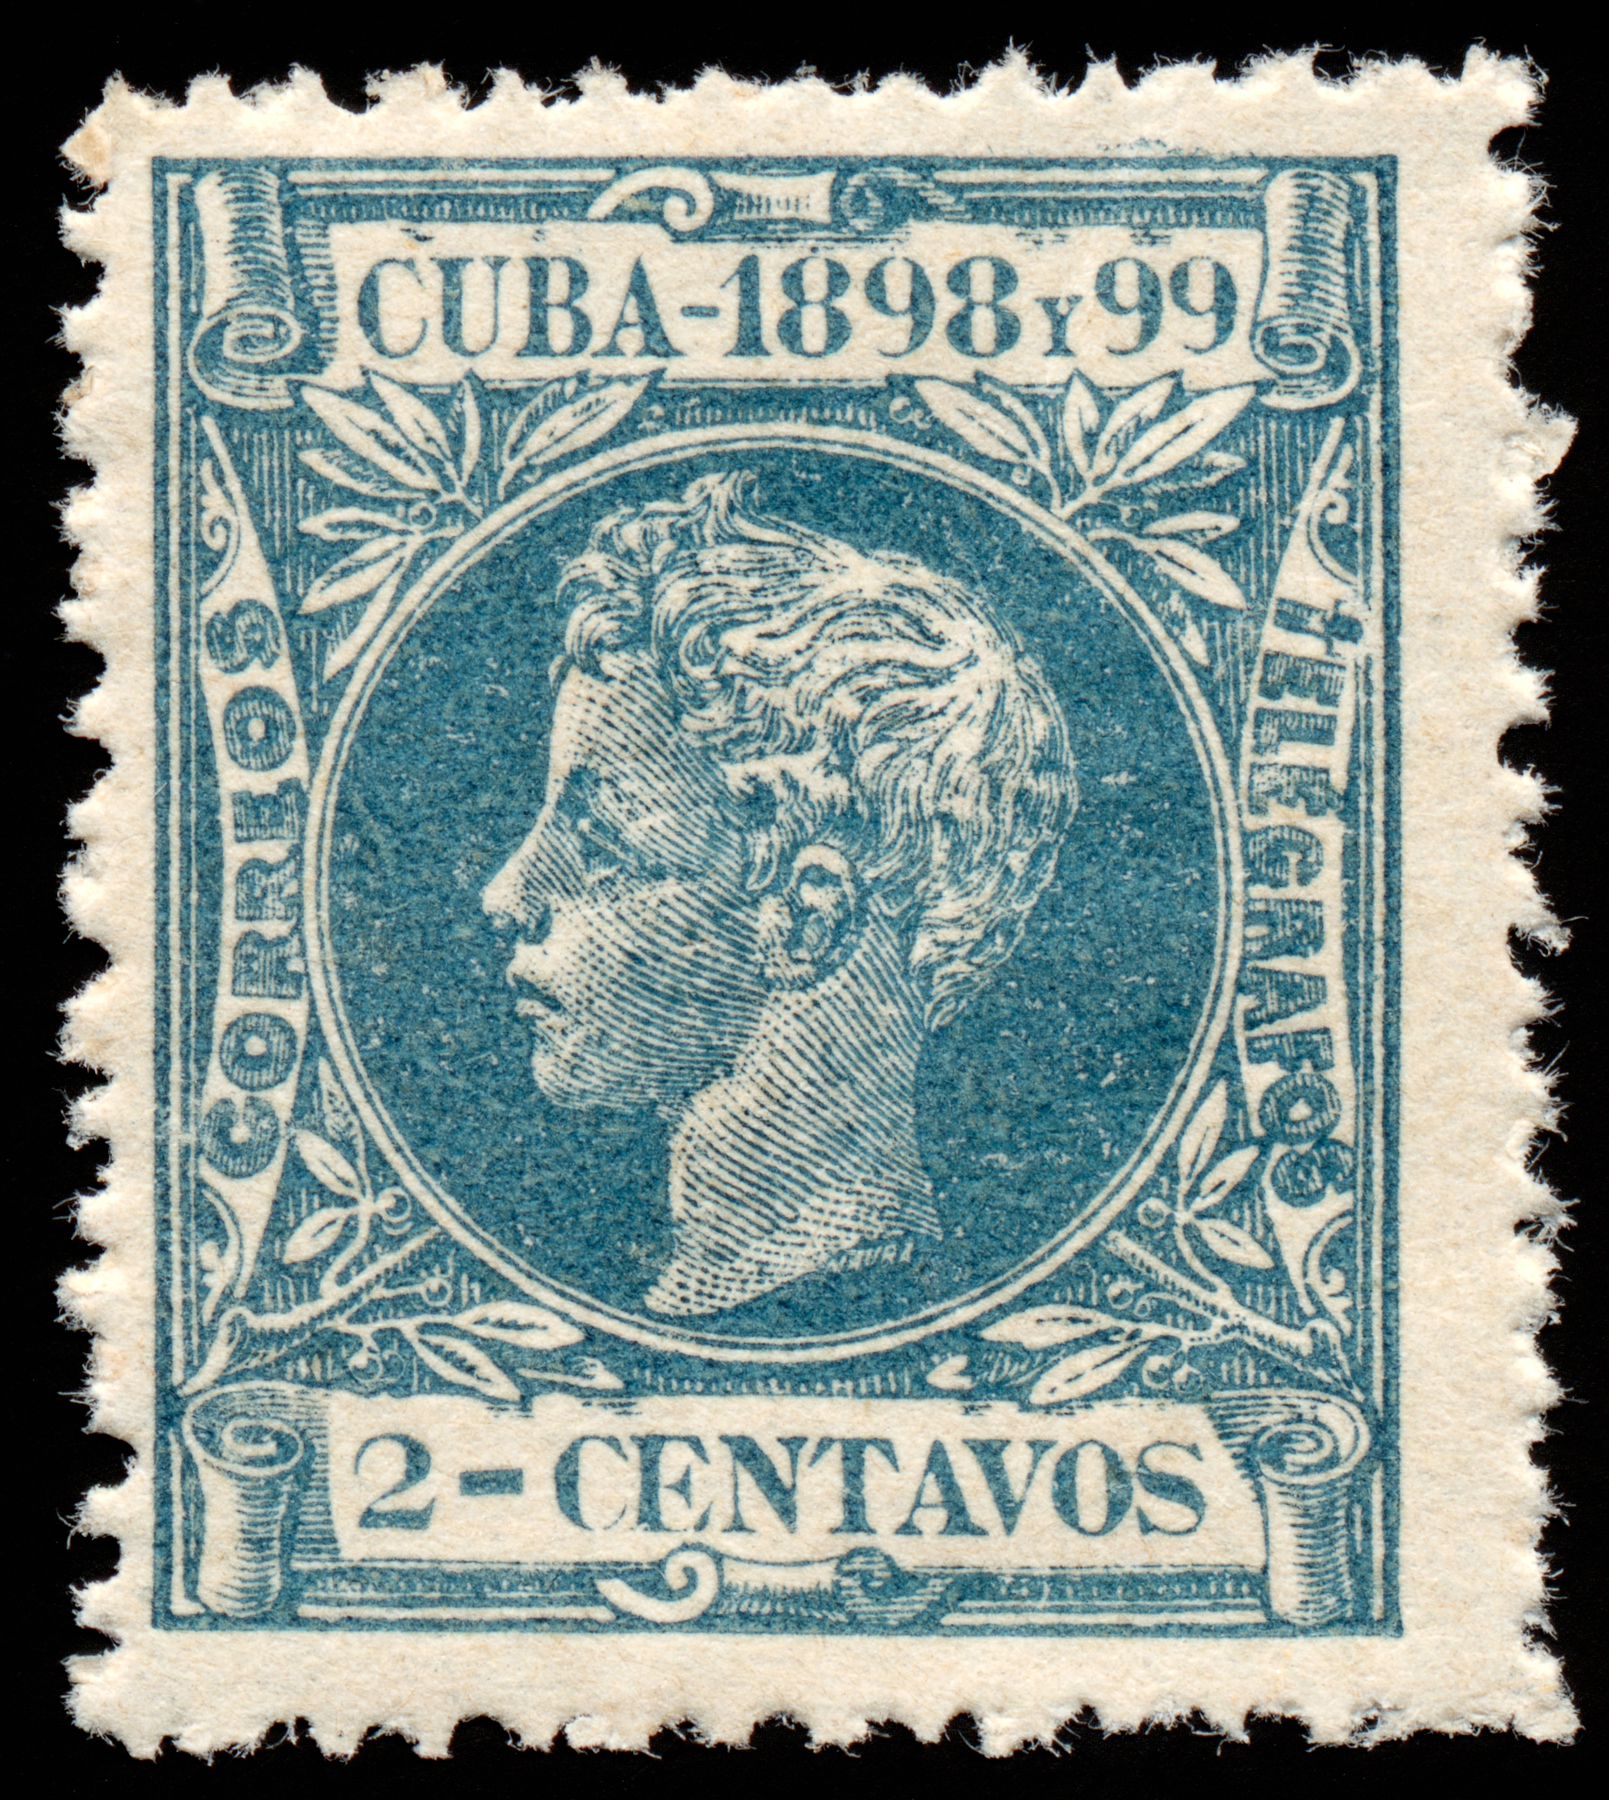 Cyan king alfonso xiii stamp photo